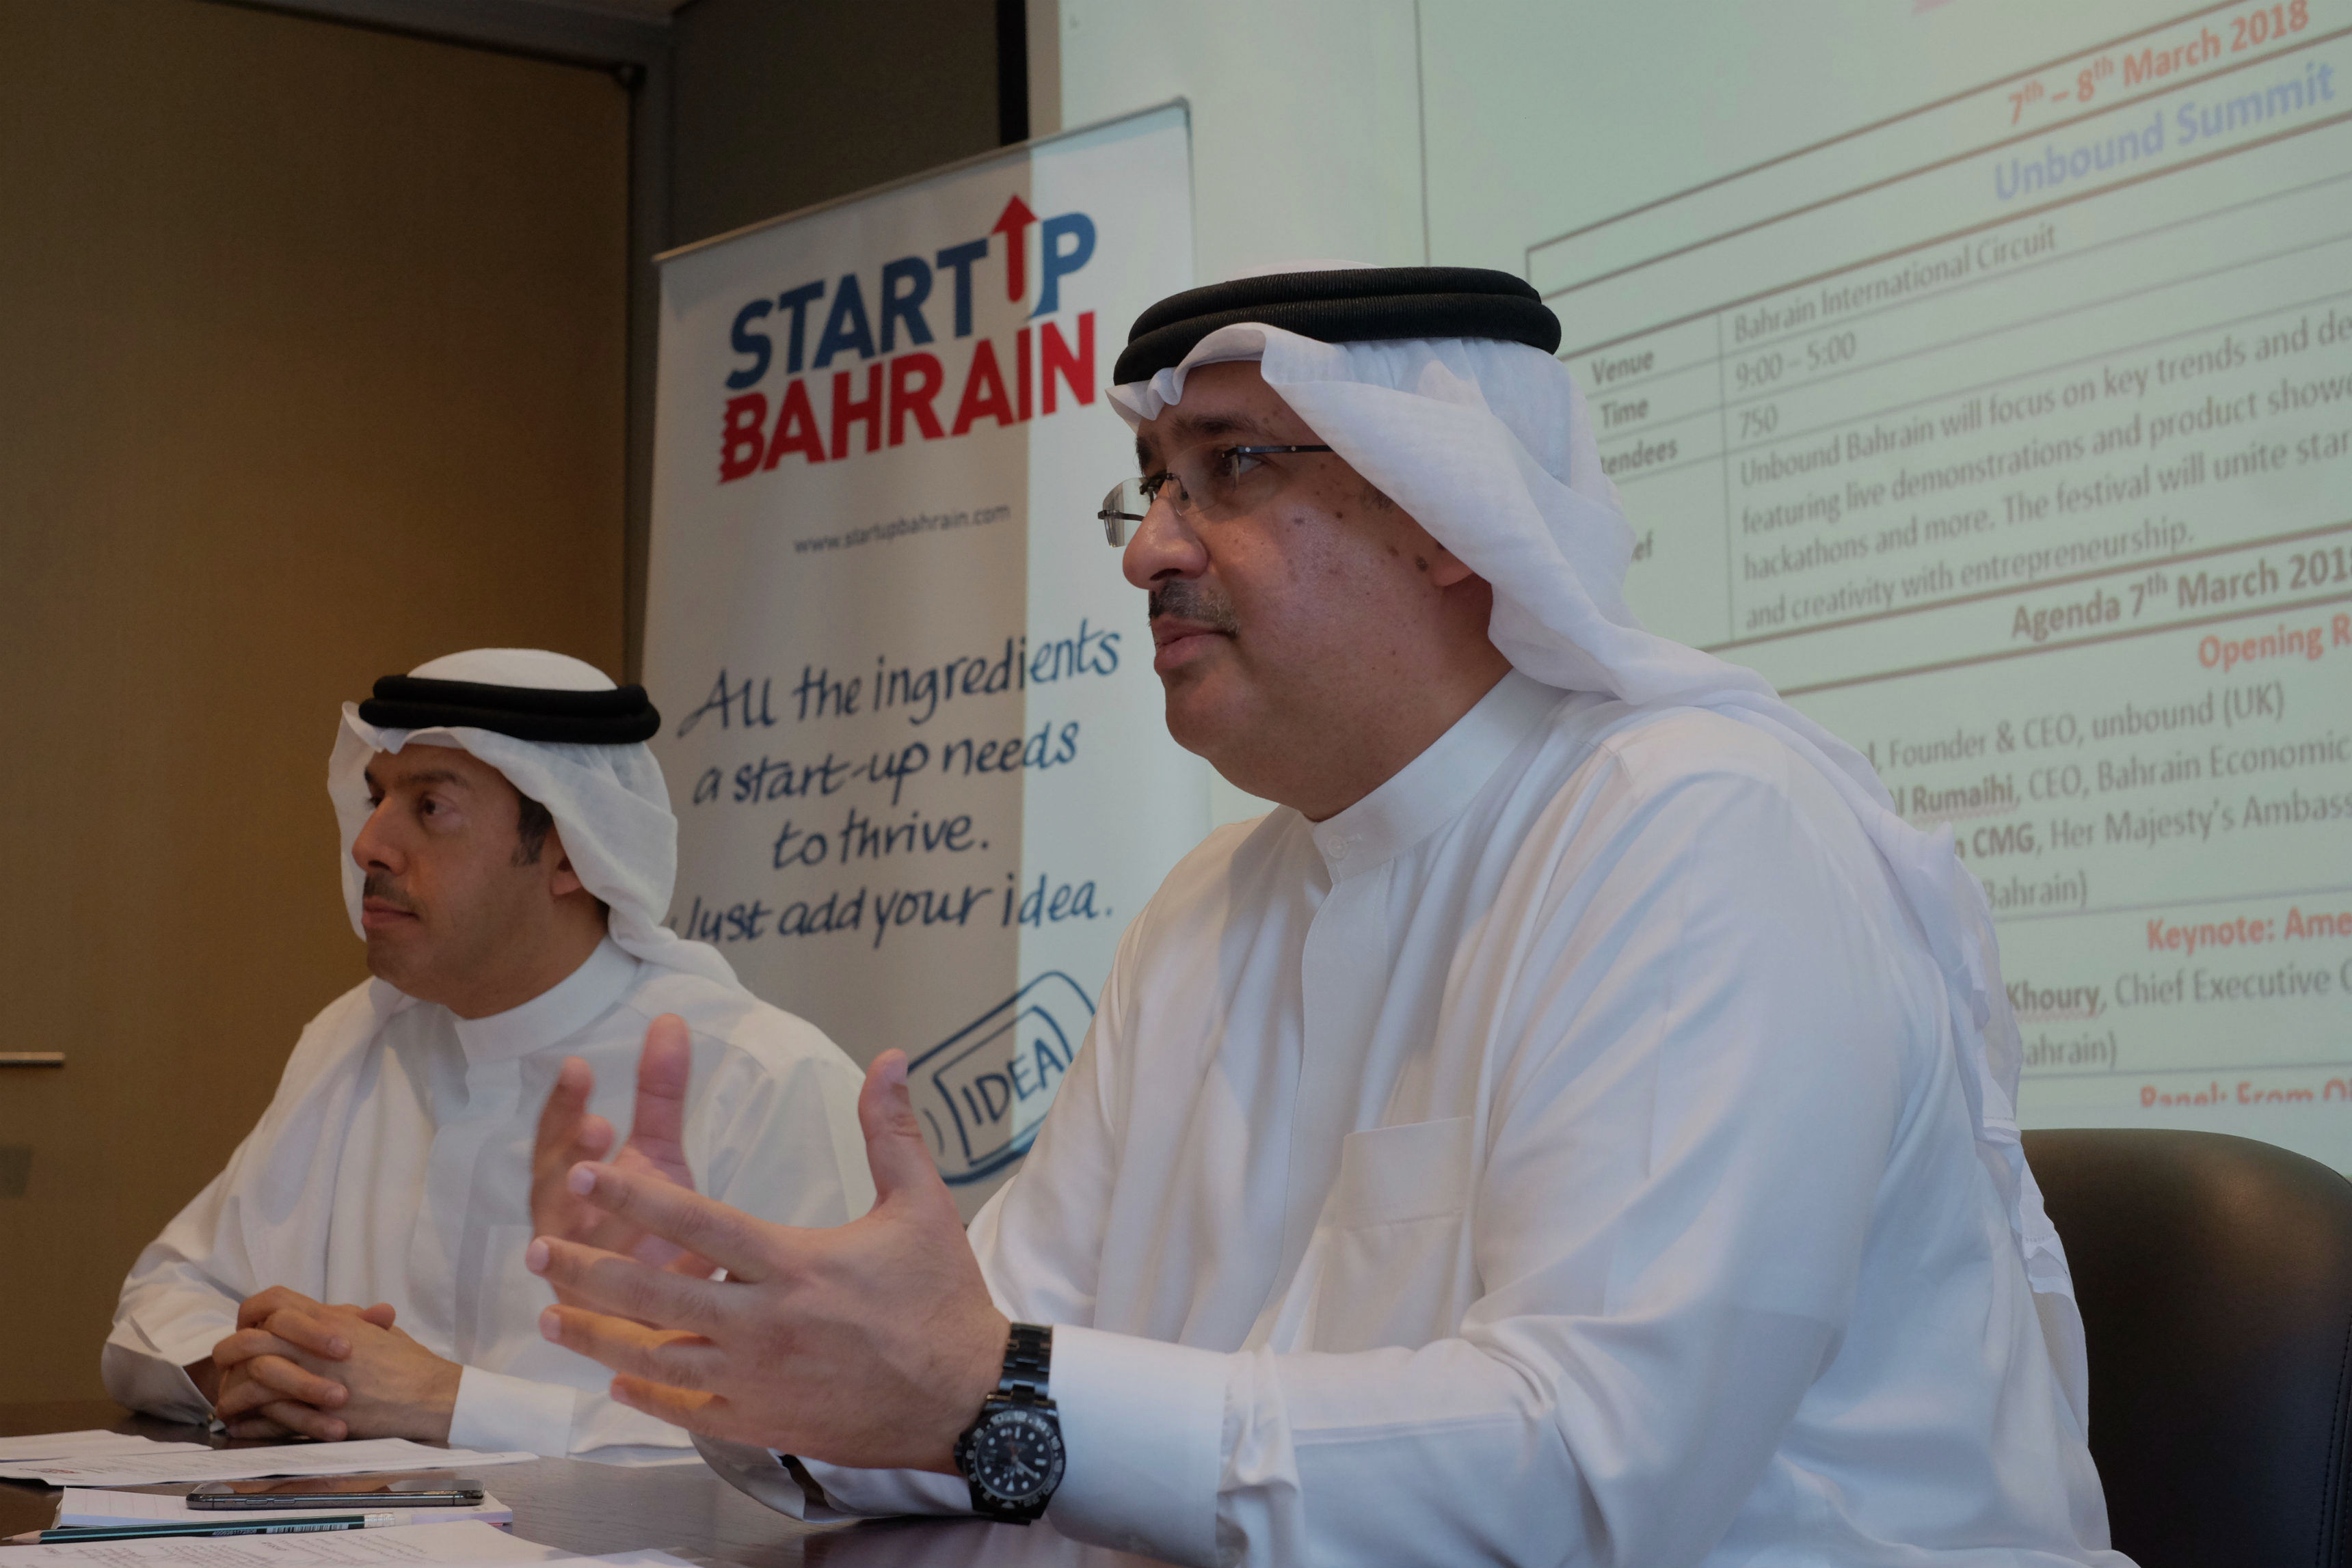 StartUp Bahrain Week supports the future of innovation in the region